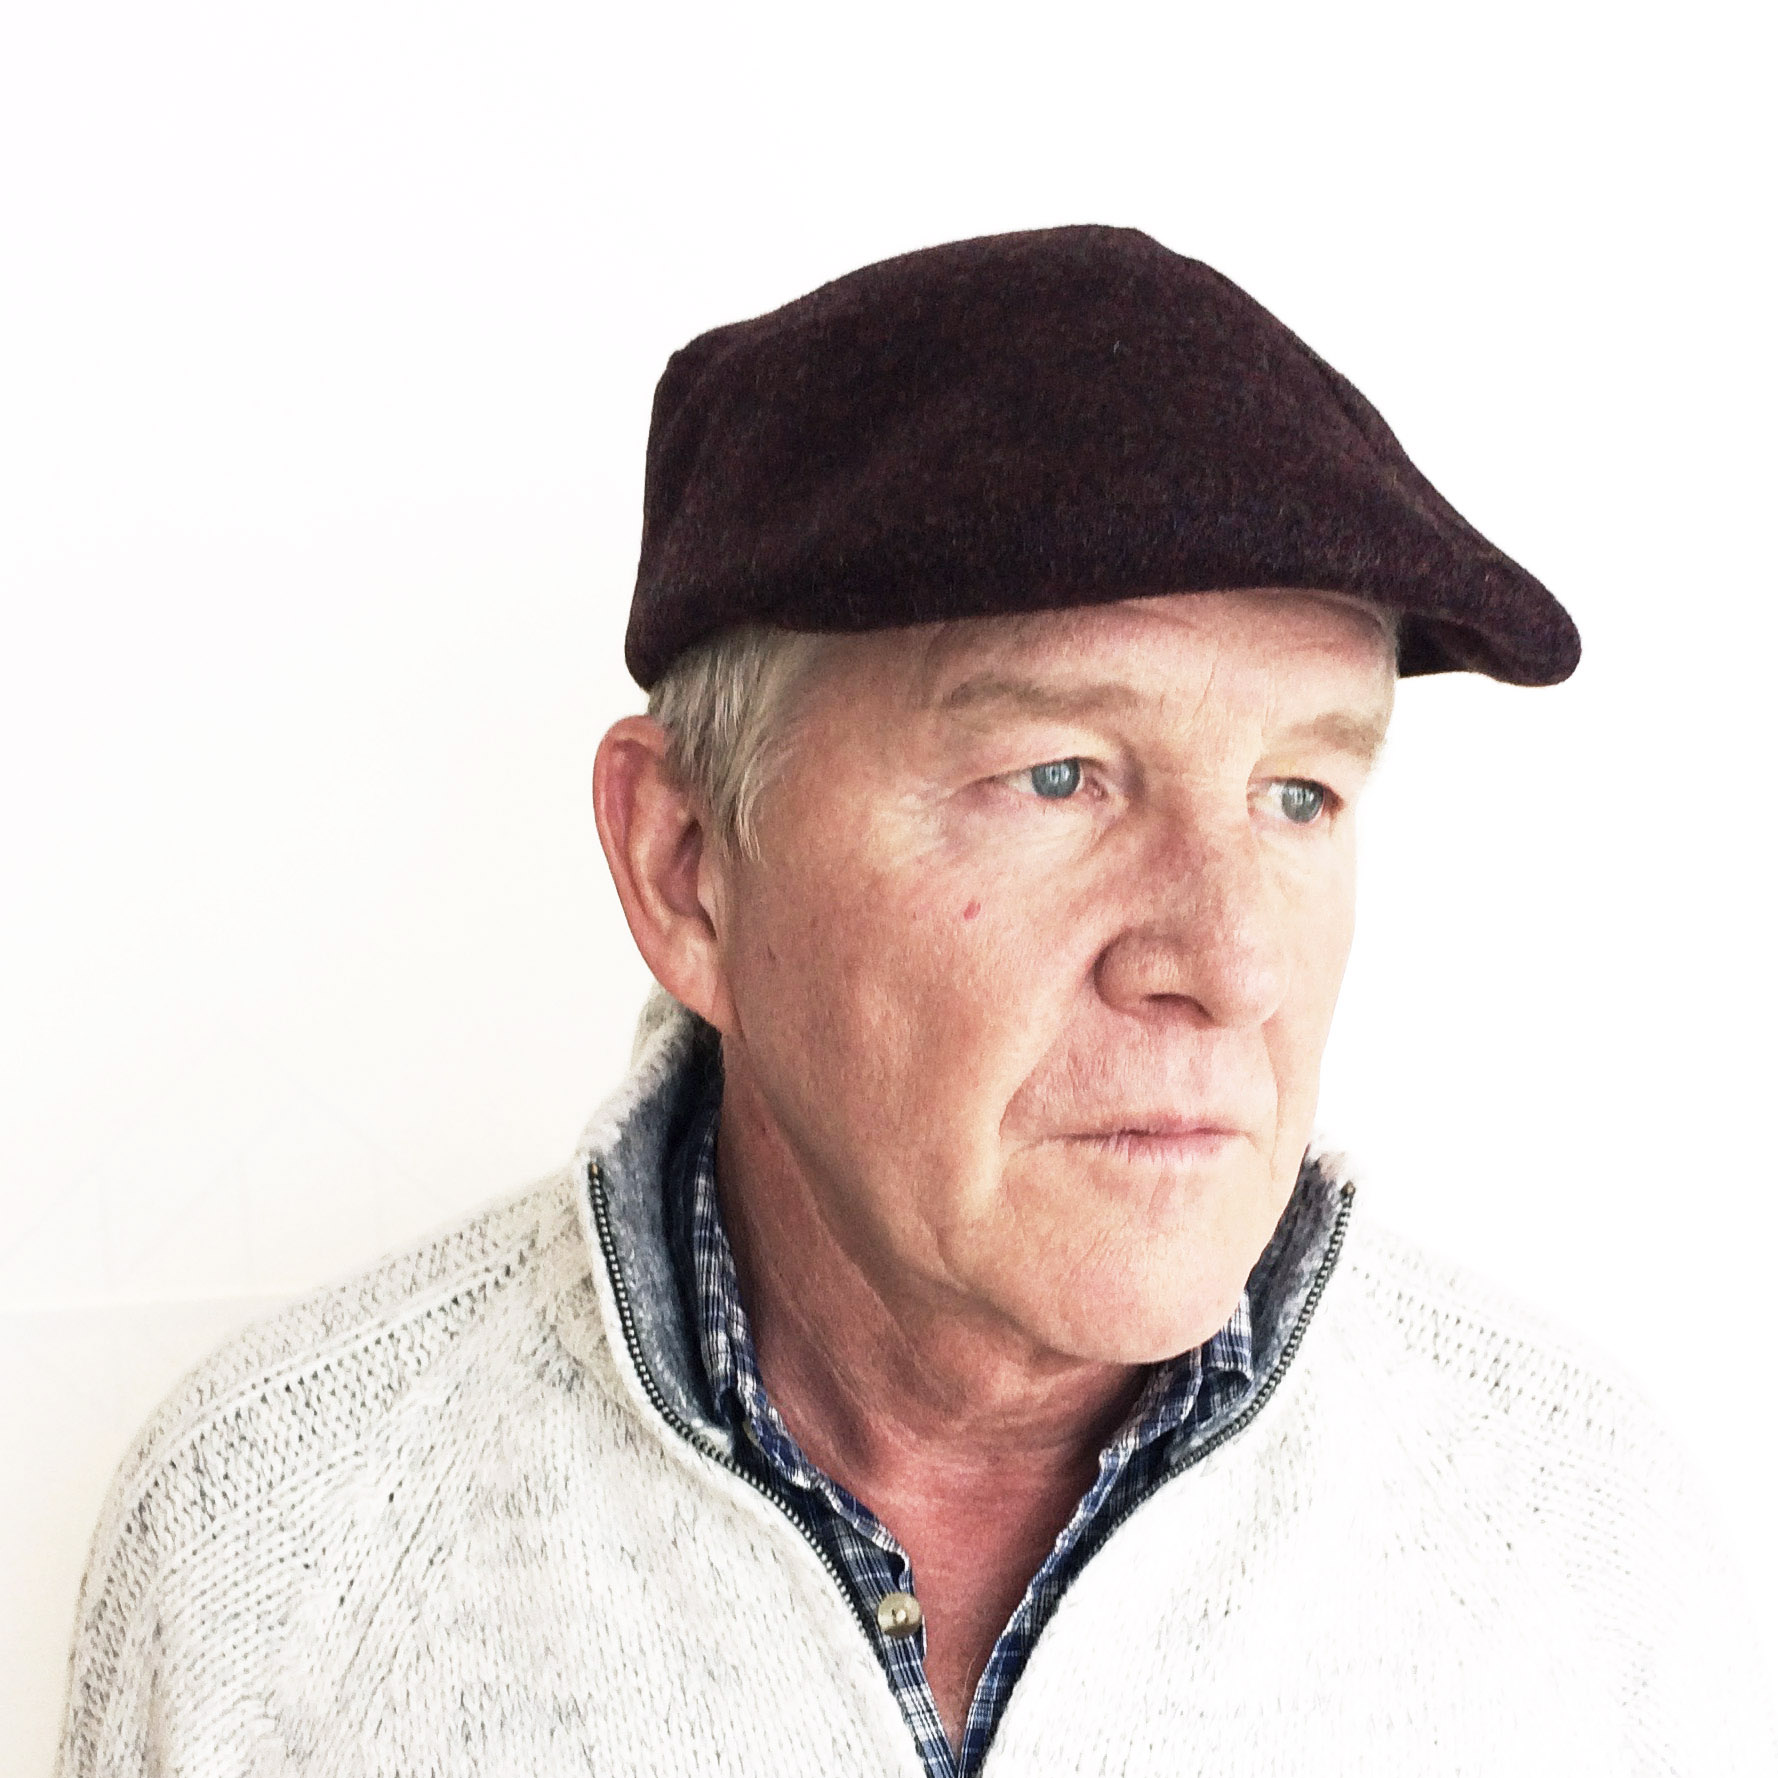 Eric wears 'Garvey' flat cap in burgundy wool tweed   enquire  about this hat